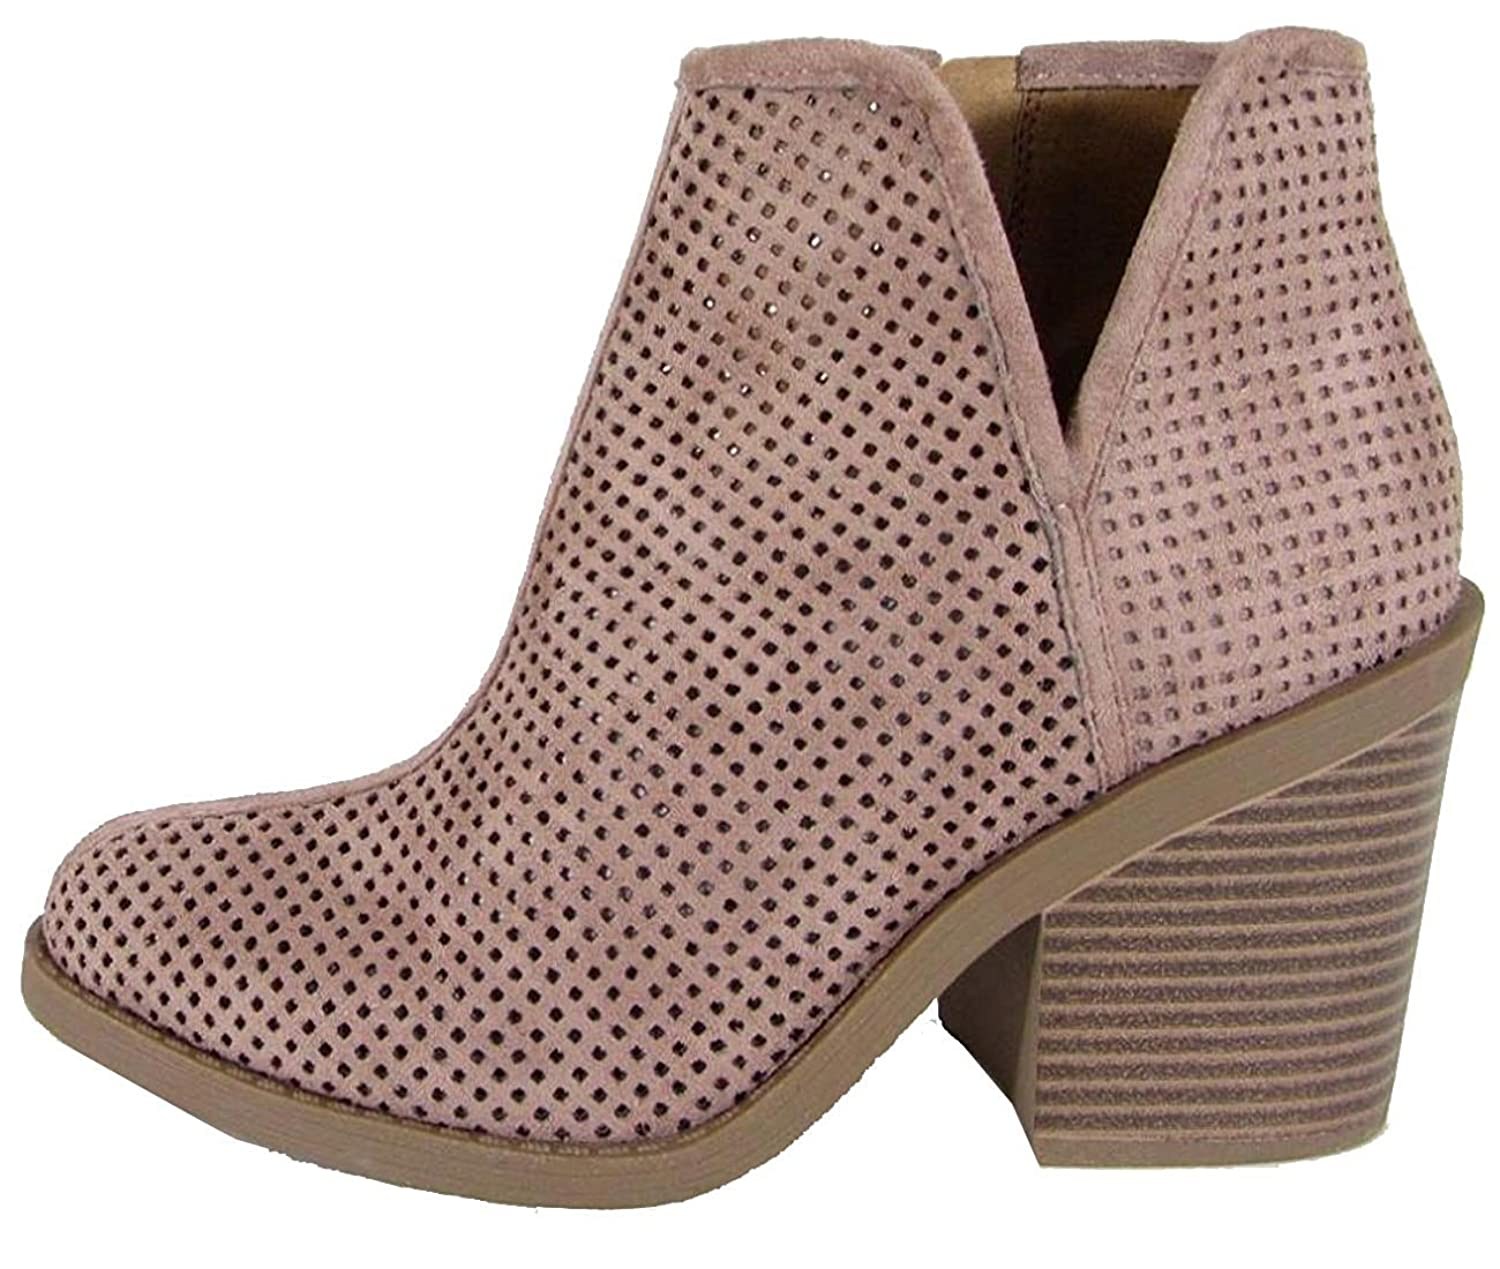 SodaWomens Tarpon Perforated Stacked Block Heel Ankle Bootie